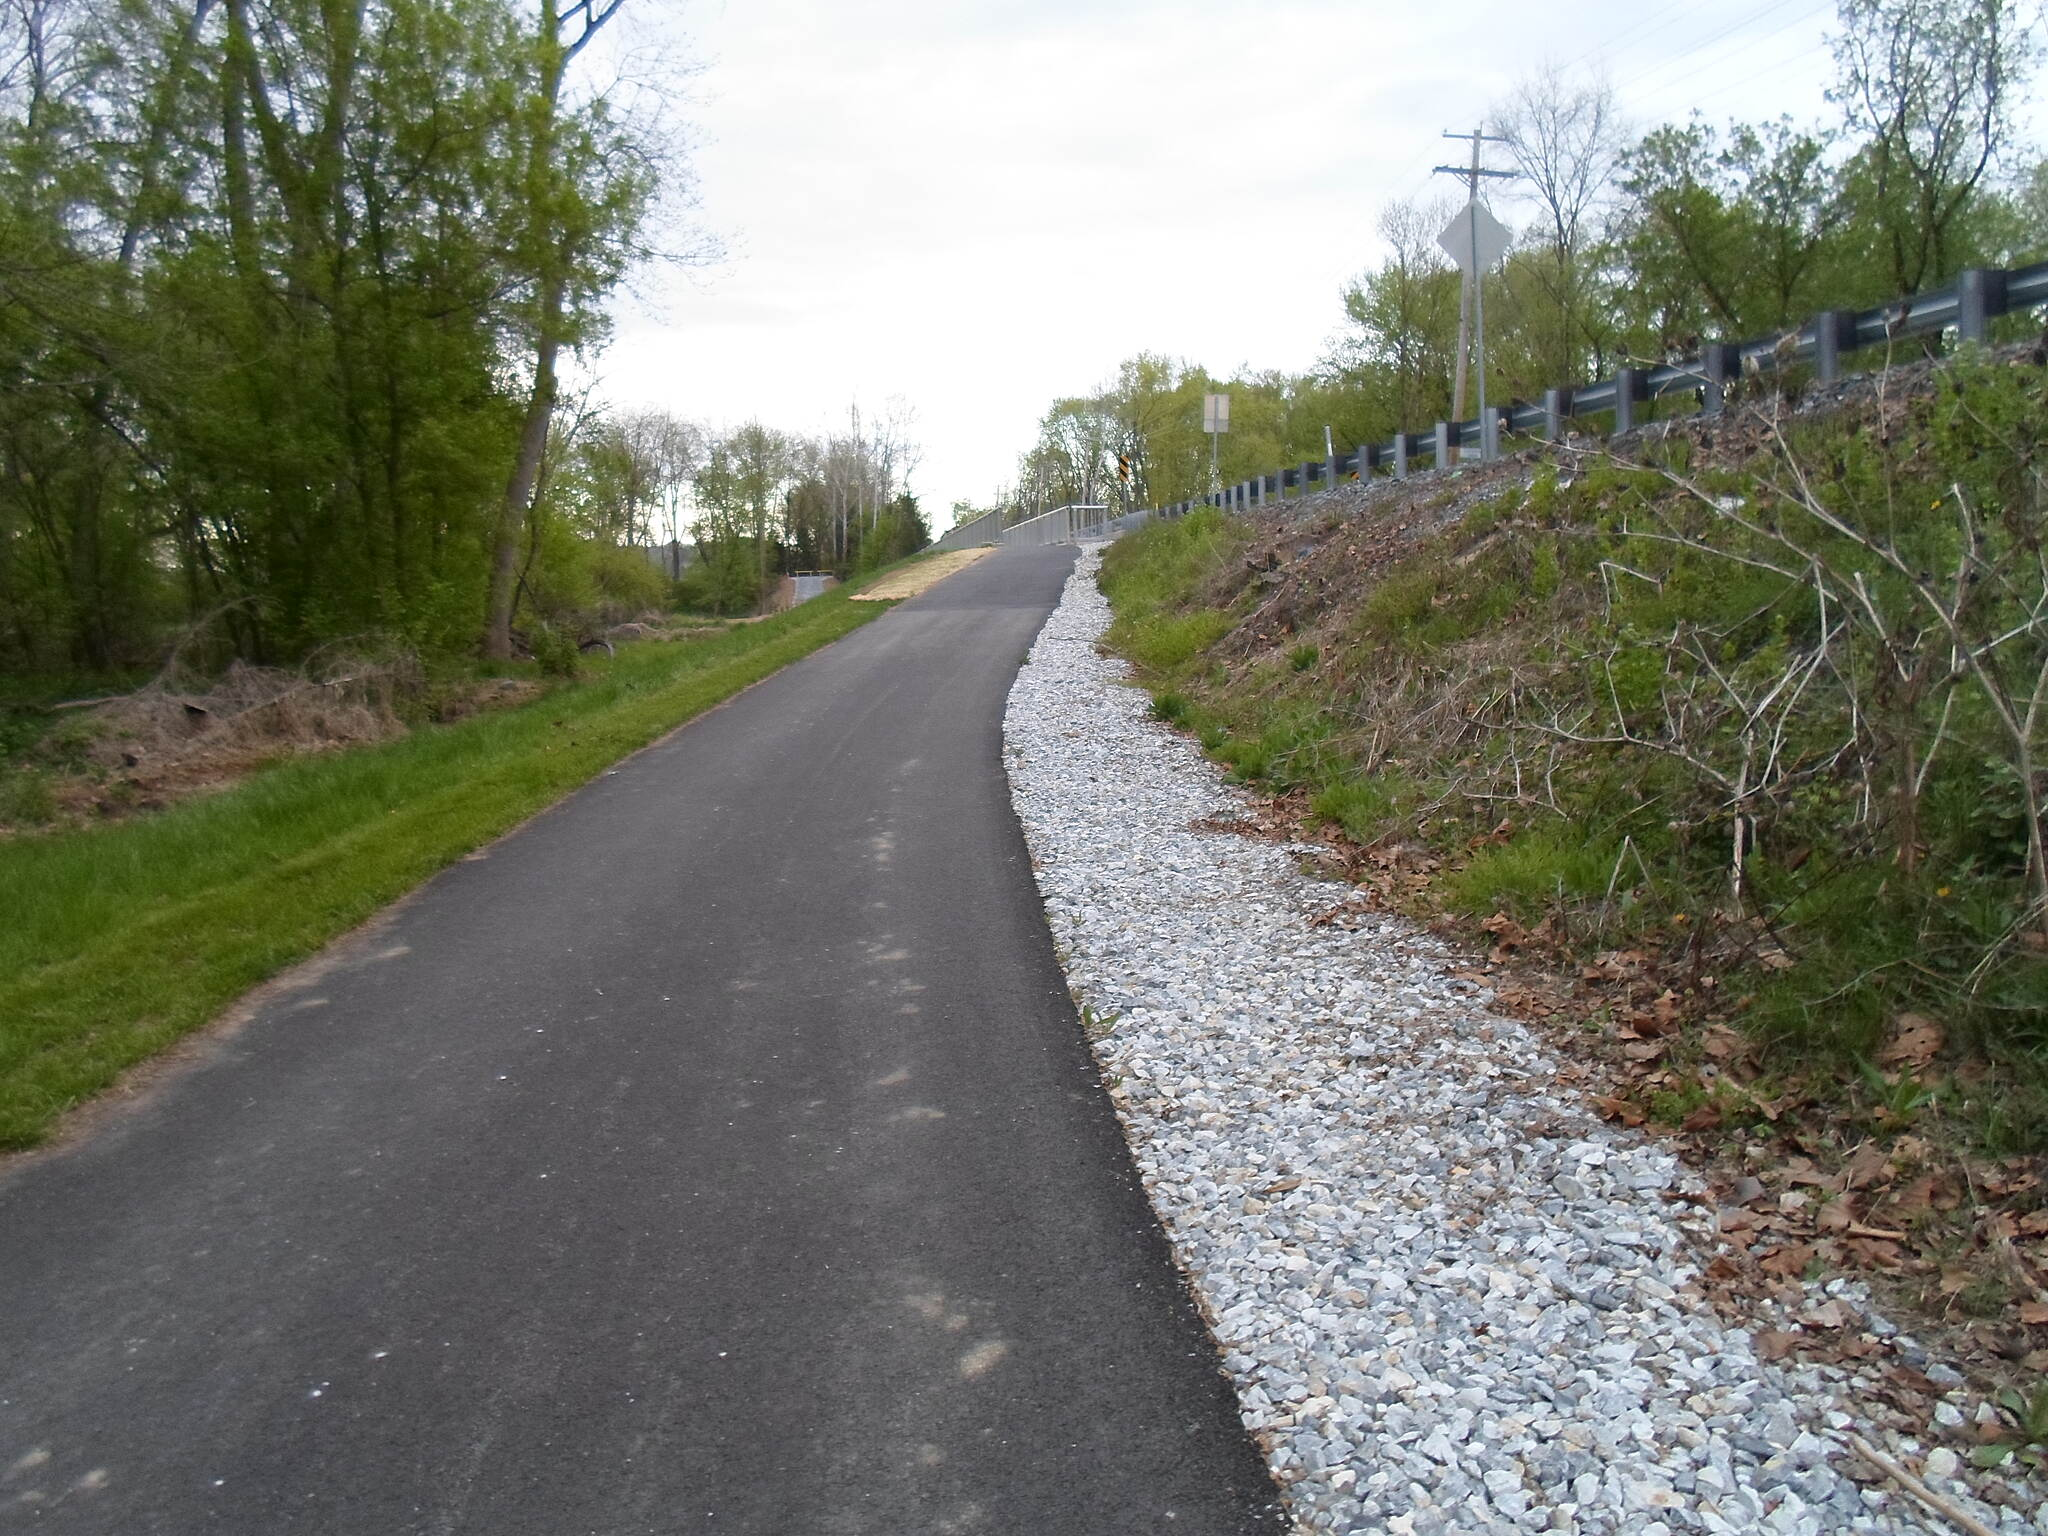 Heritage Rail Trail County Park Heritage Rail Trail Park Approaching the bridge over Codorus Creek; Emig Road can be seen immediately to the south. Taken April 2015.